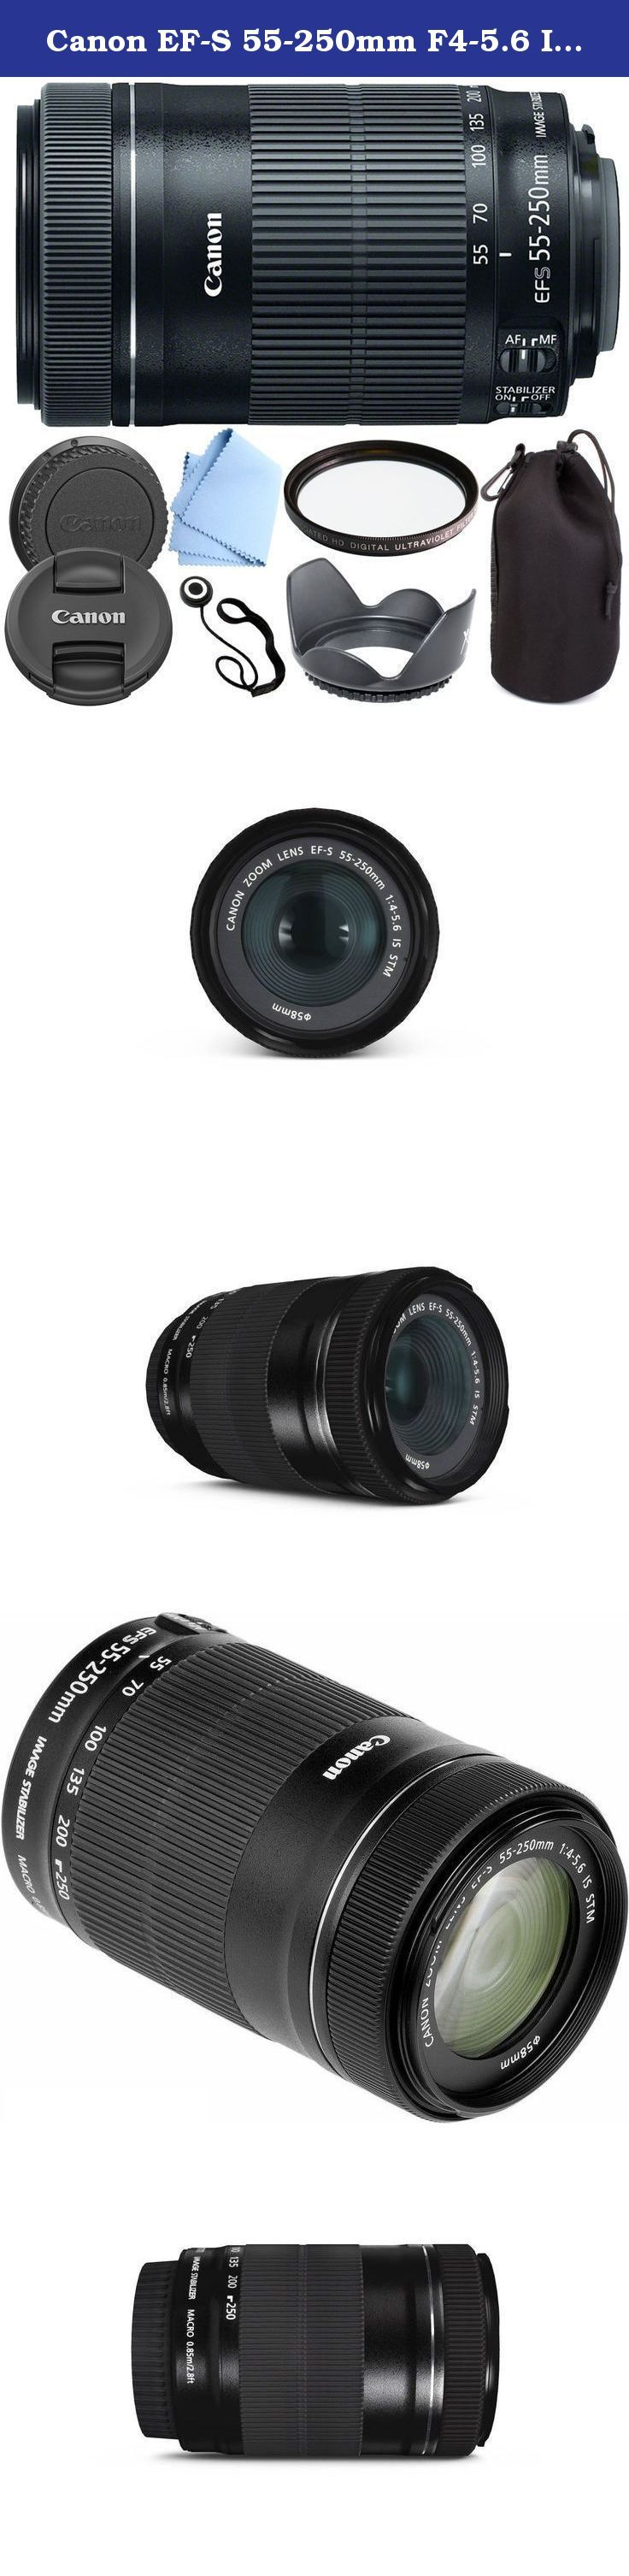 Canon EF-S 55-250mm F4-5.6 IS STM - International Version (No Warranty) Zoom Lens for for Canon EOS 7D, 60D, EOS Rebel SL1, T1i, T2i, T3, T3i, T4i, T5i, XS, XSi, XT, XTi Digital SLR Cameras + Shop Smart Deals Deluxe Kit 55-250mm STM. The Canon EF-S 55-250mm f/4-5.6 IS STM Lens from Canon is a long-reaching zoom lens that provides a 35mm-equivalent focal length range of 88-400mm, covering portrait-length to telephoto perspectives to suit working with distant subject matter. Greatly...